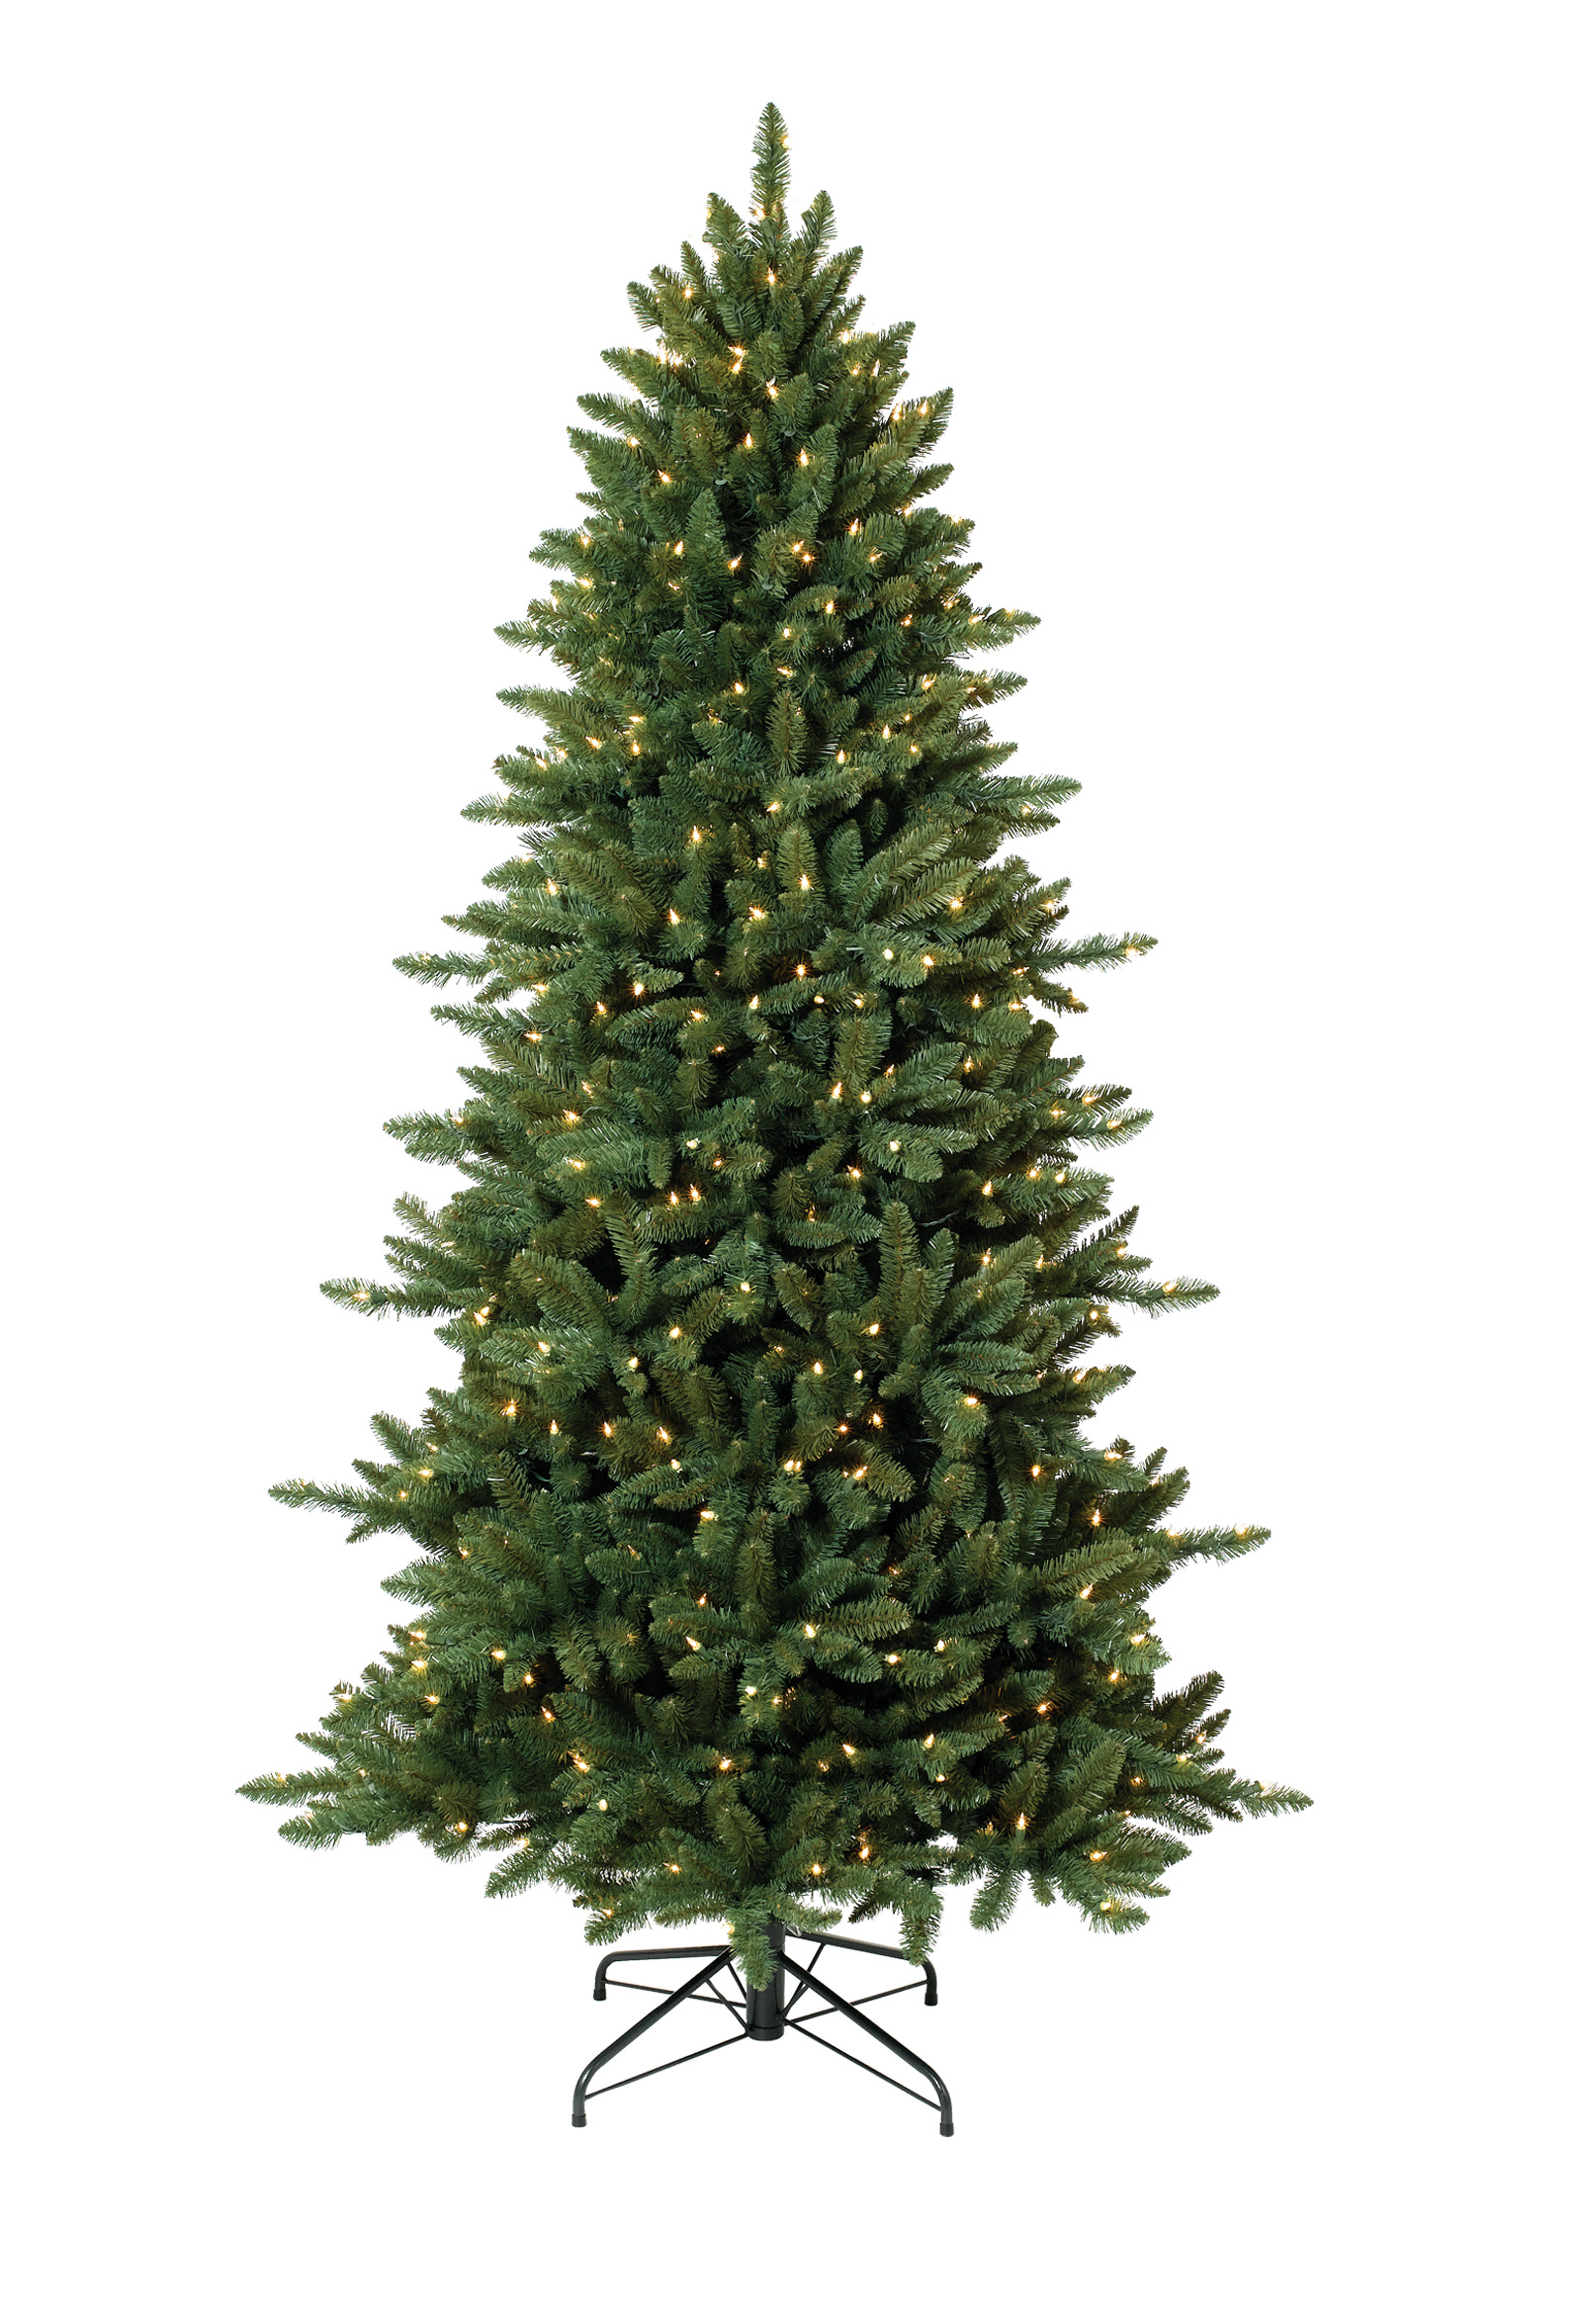 8 foot sierra slim clear christmas tree with clear lights - Christmas Tree Slim